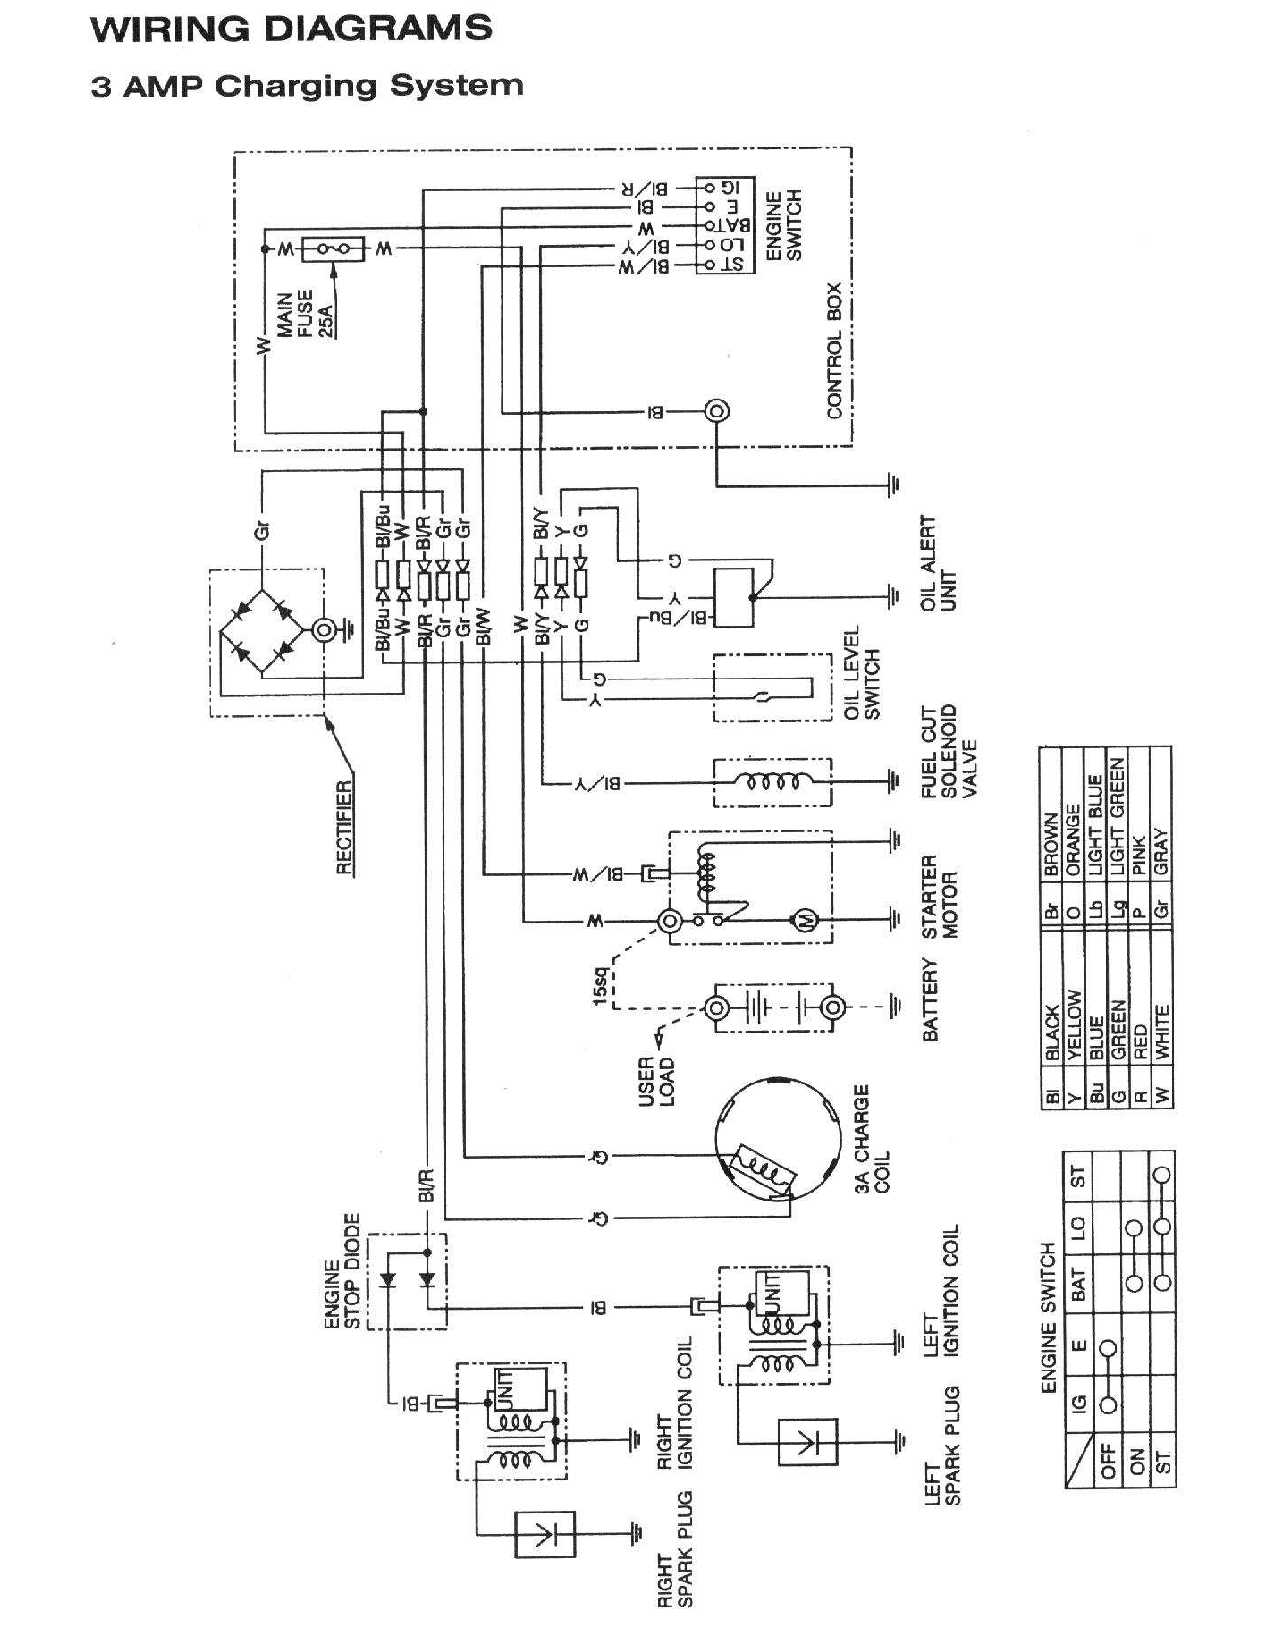 Honda Gx390 Ignition Wiring Diagram from ww2.justanswer.com